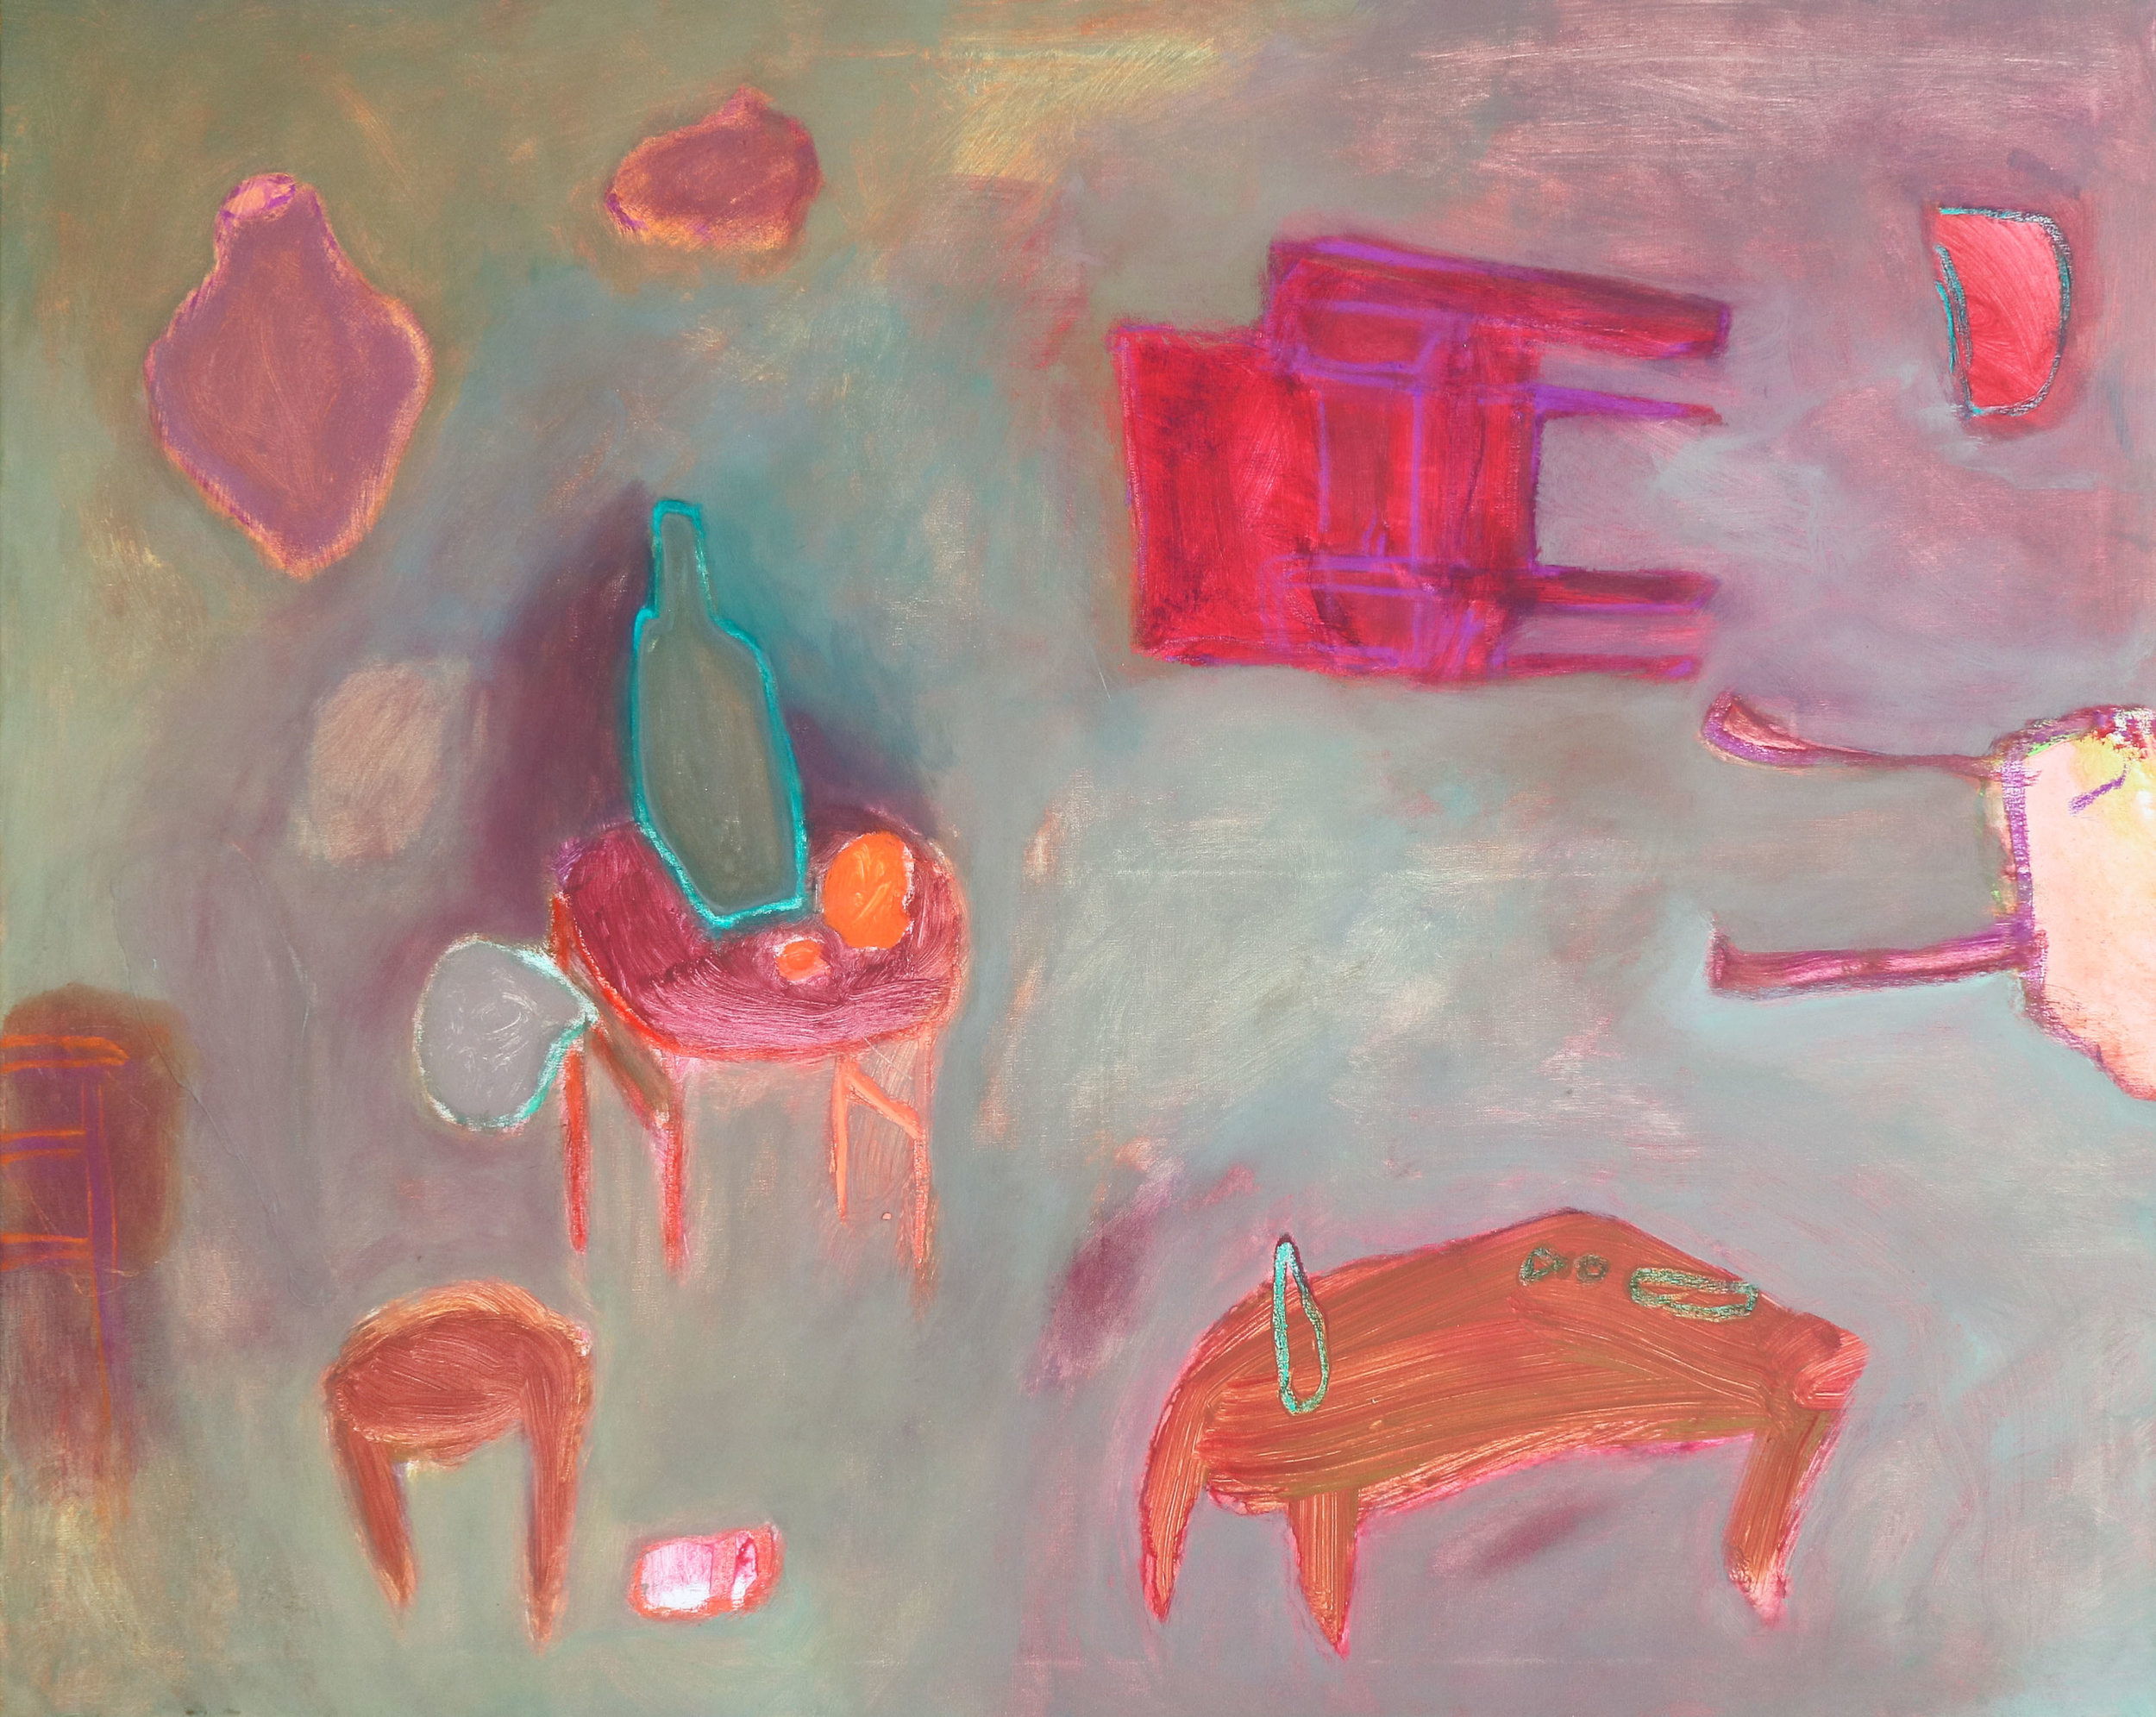 Red Chair in Mint Room I, 2018